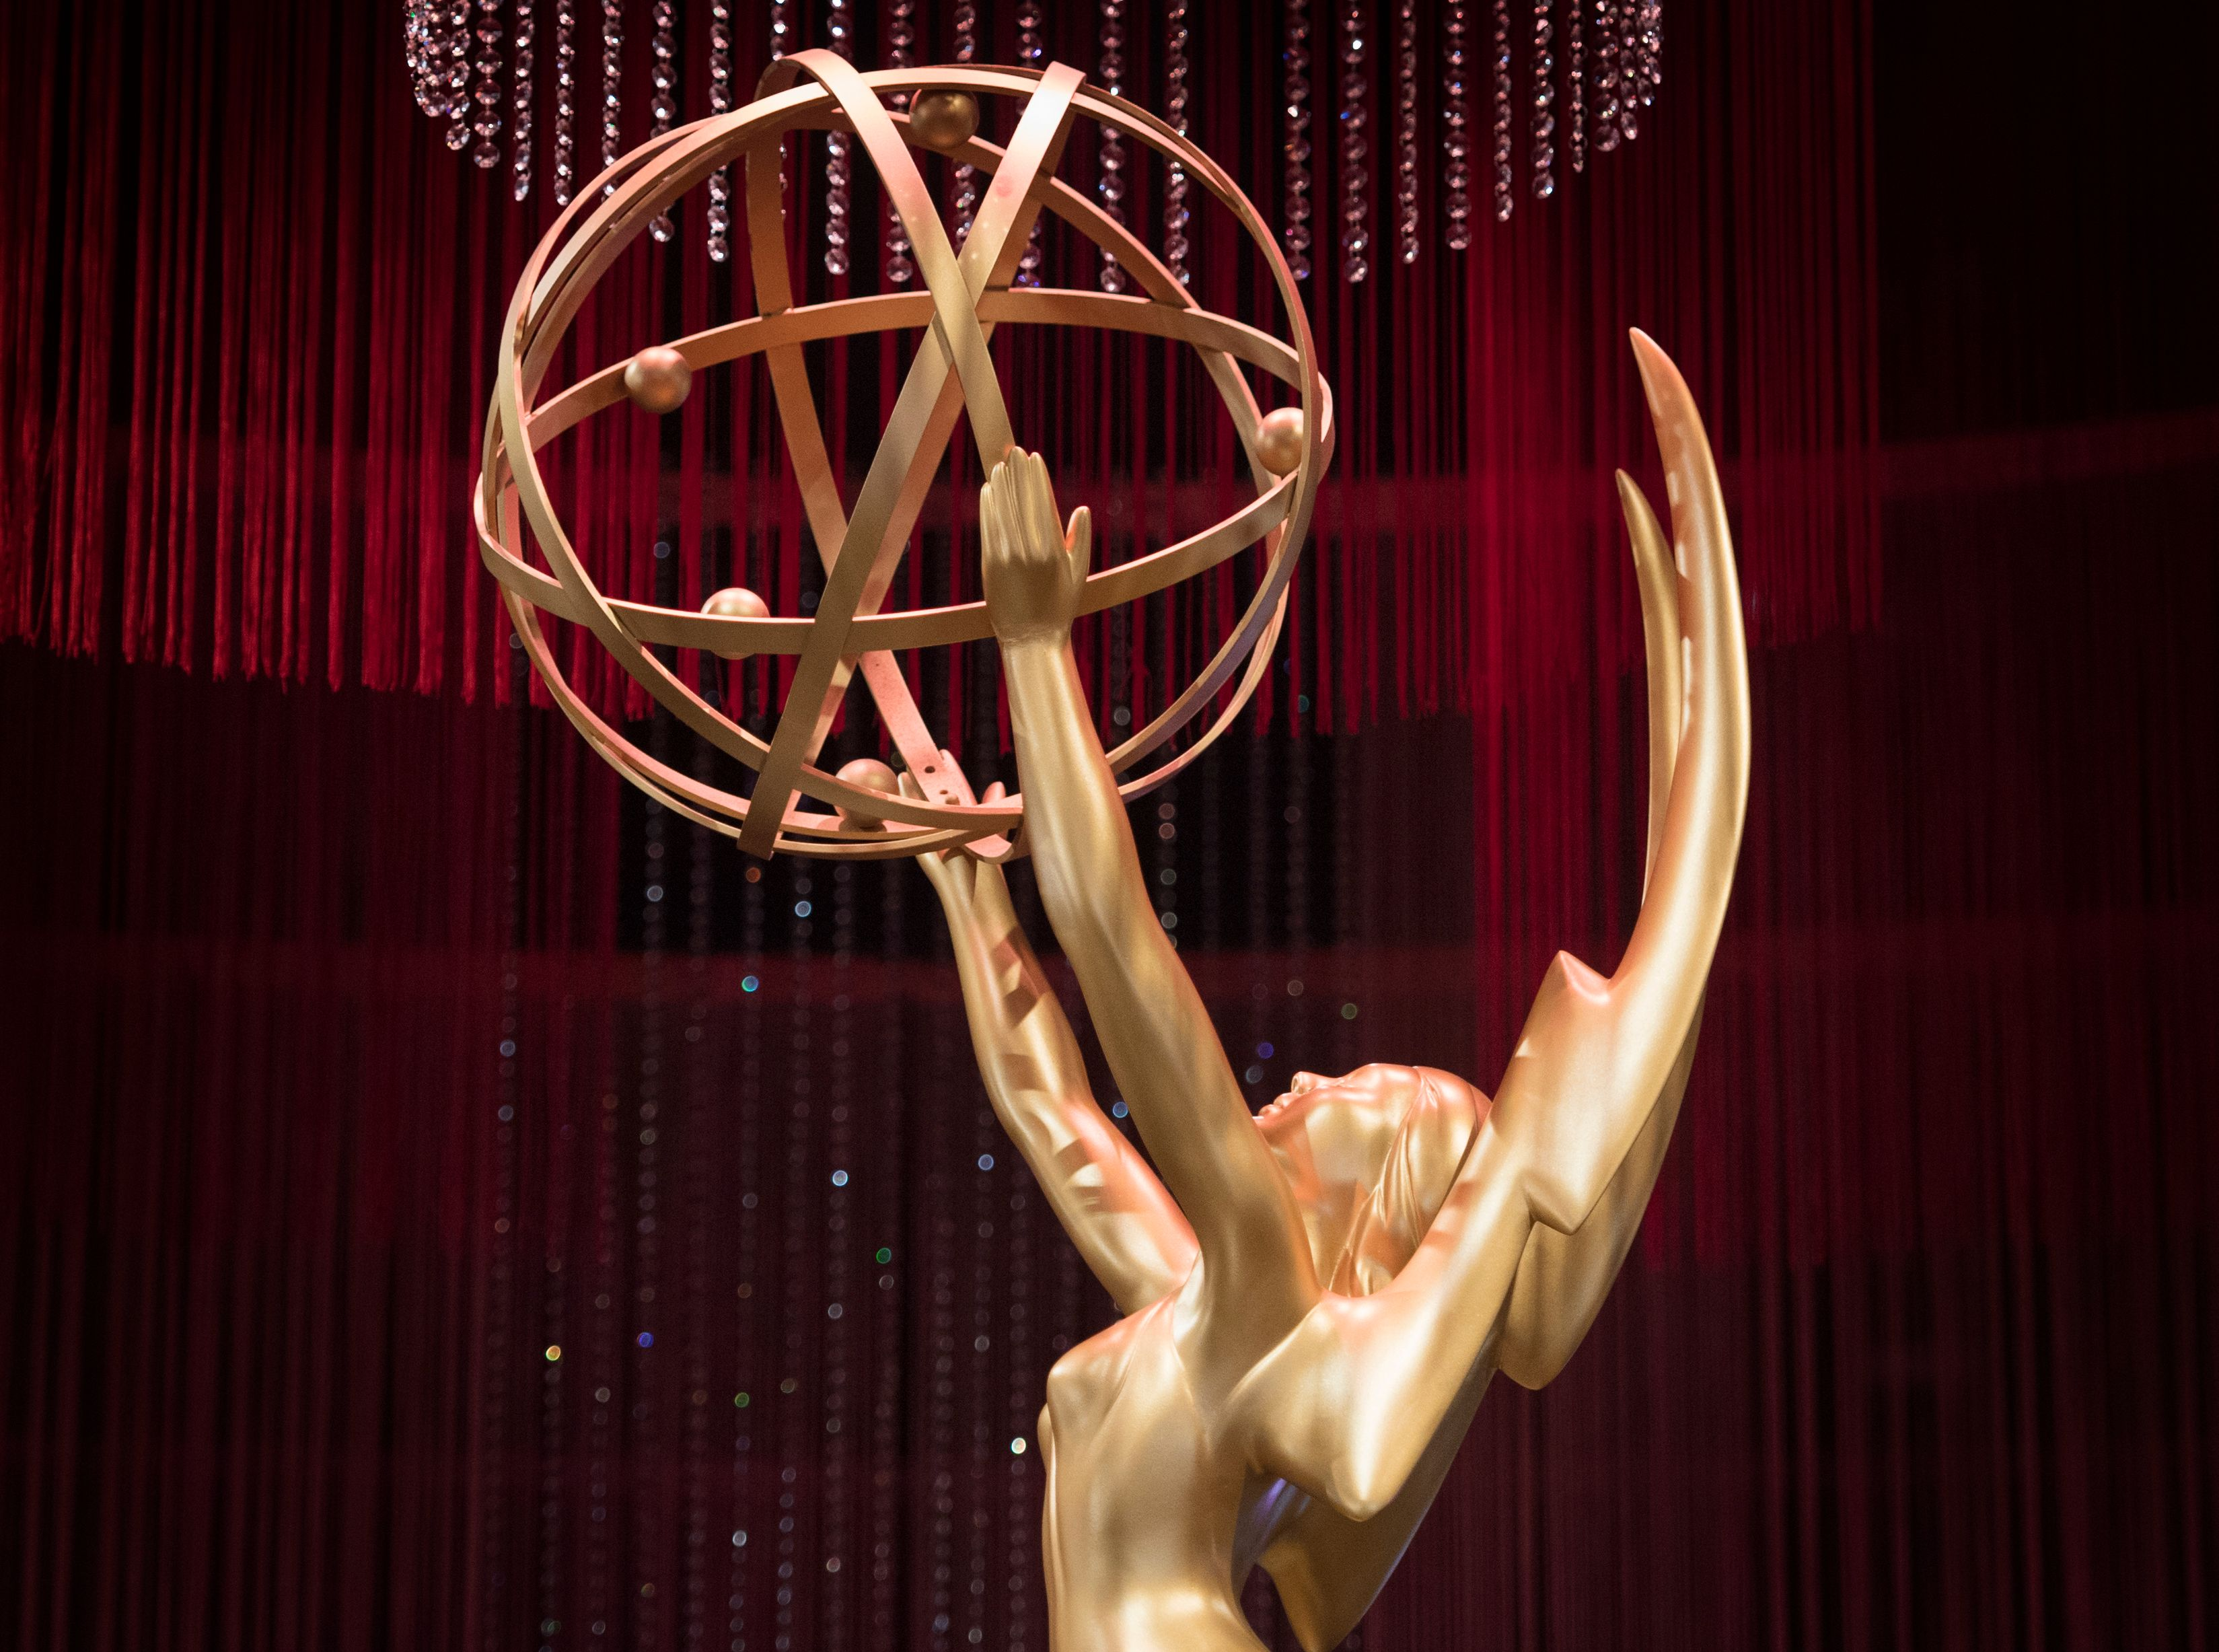 The Emmy statuette is a female figure with wings holding up a ball representing rotating electrons.